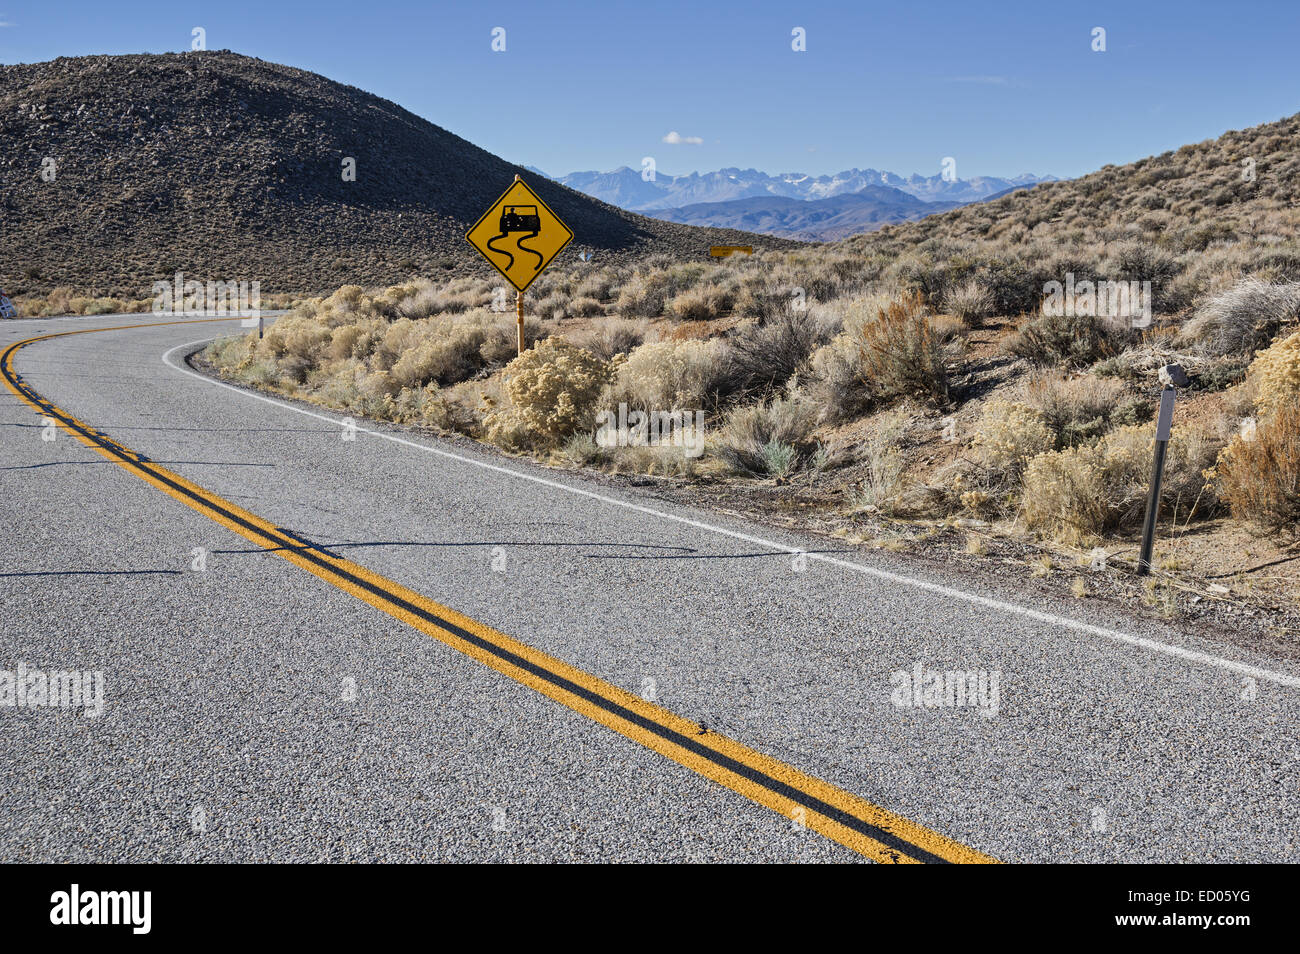 curved road with slippery road sign and distant mountains - Stock Image